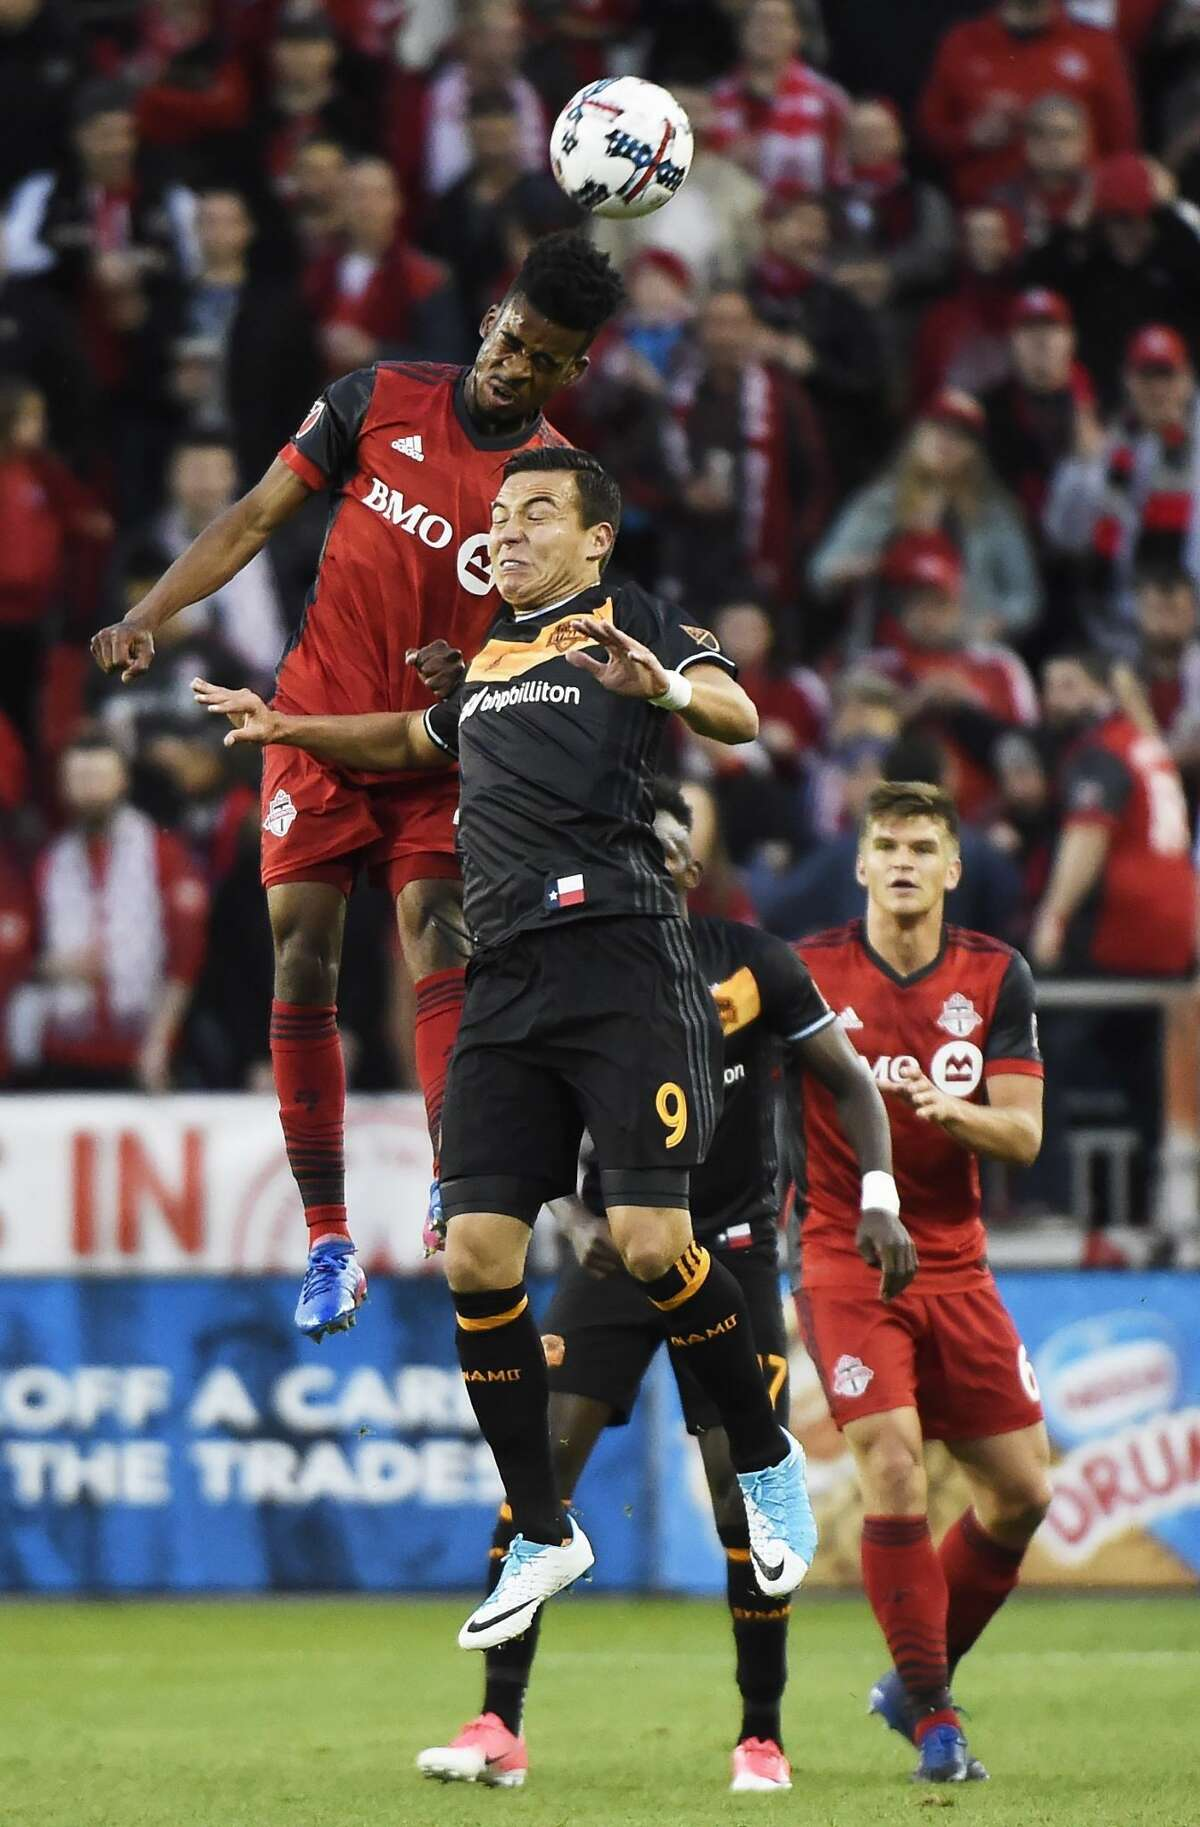 Toronto FC forward Raheem Edwards (44) and Houston Dynamo forward Erick Torres (9) jump for the ball during the first half of an MLS soccer match in Toronto on Friday, April 28, 2017. (Nathan Denette/The Canadian Press via AP)